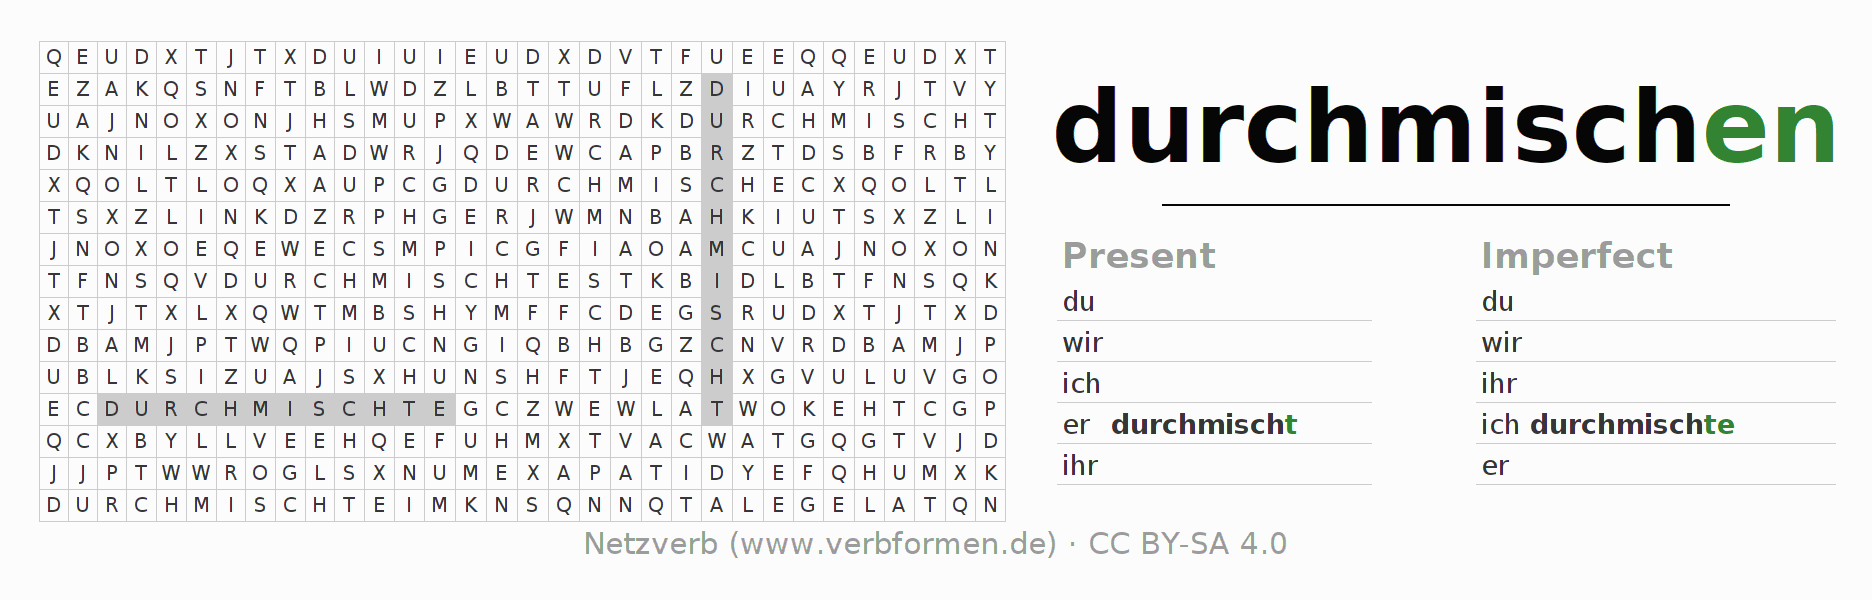 Word search puzzle for the conjugation of the verb durchmischen